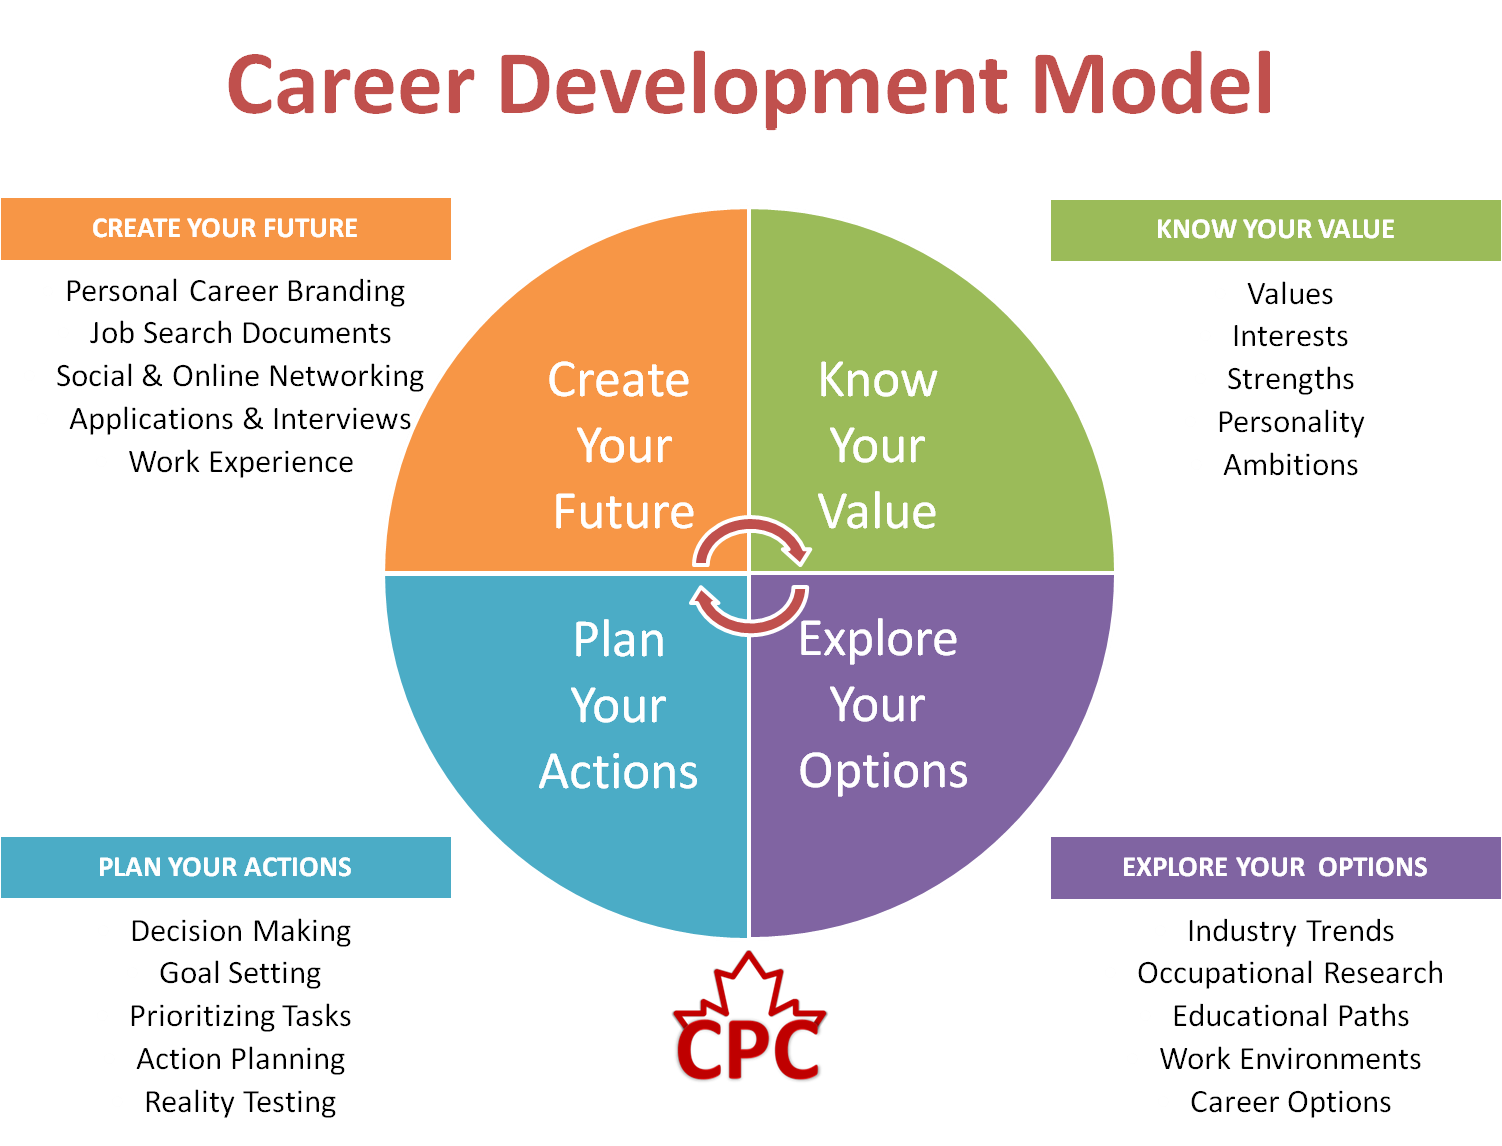 Law firms guide to selecting a cloud based vendor career career development model dodgen careerguidance dodgenco malvernweather Images